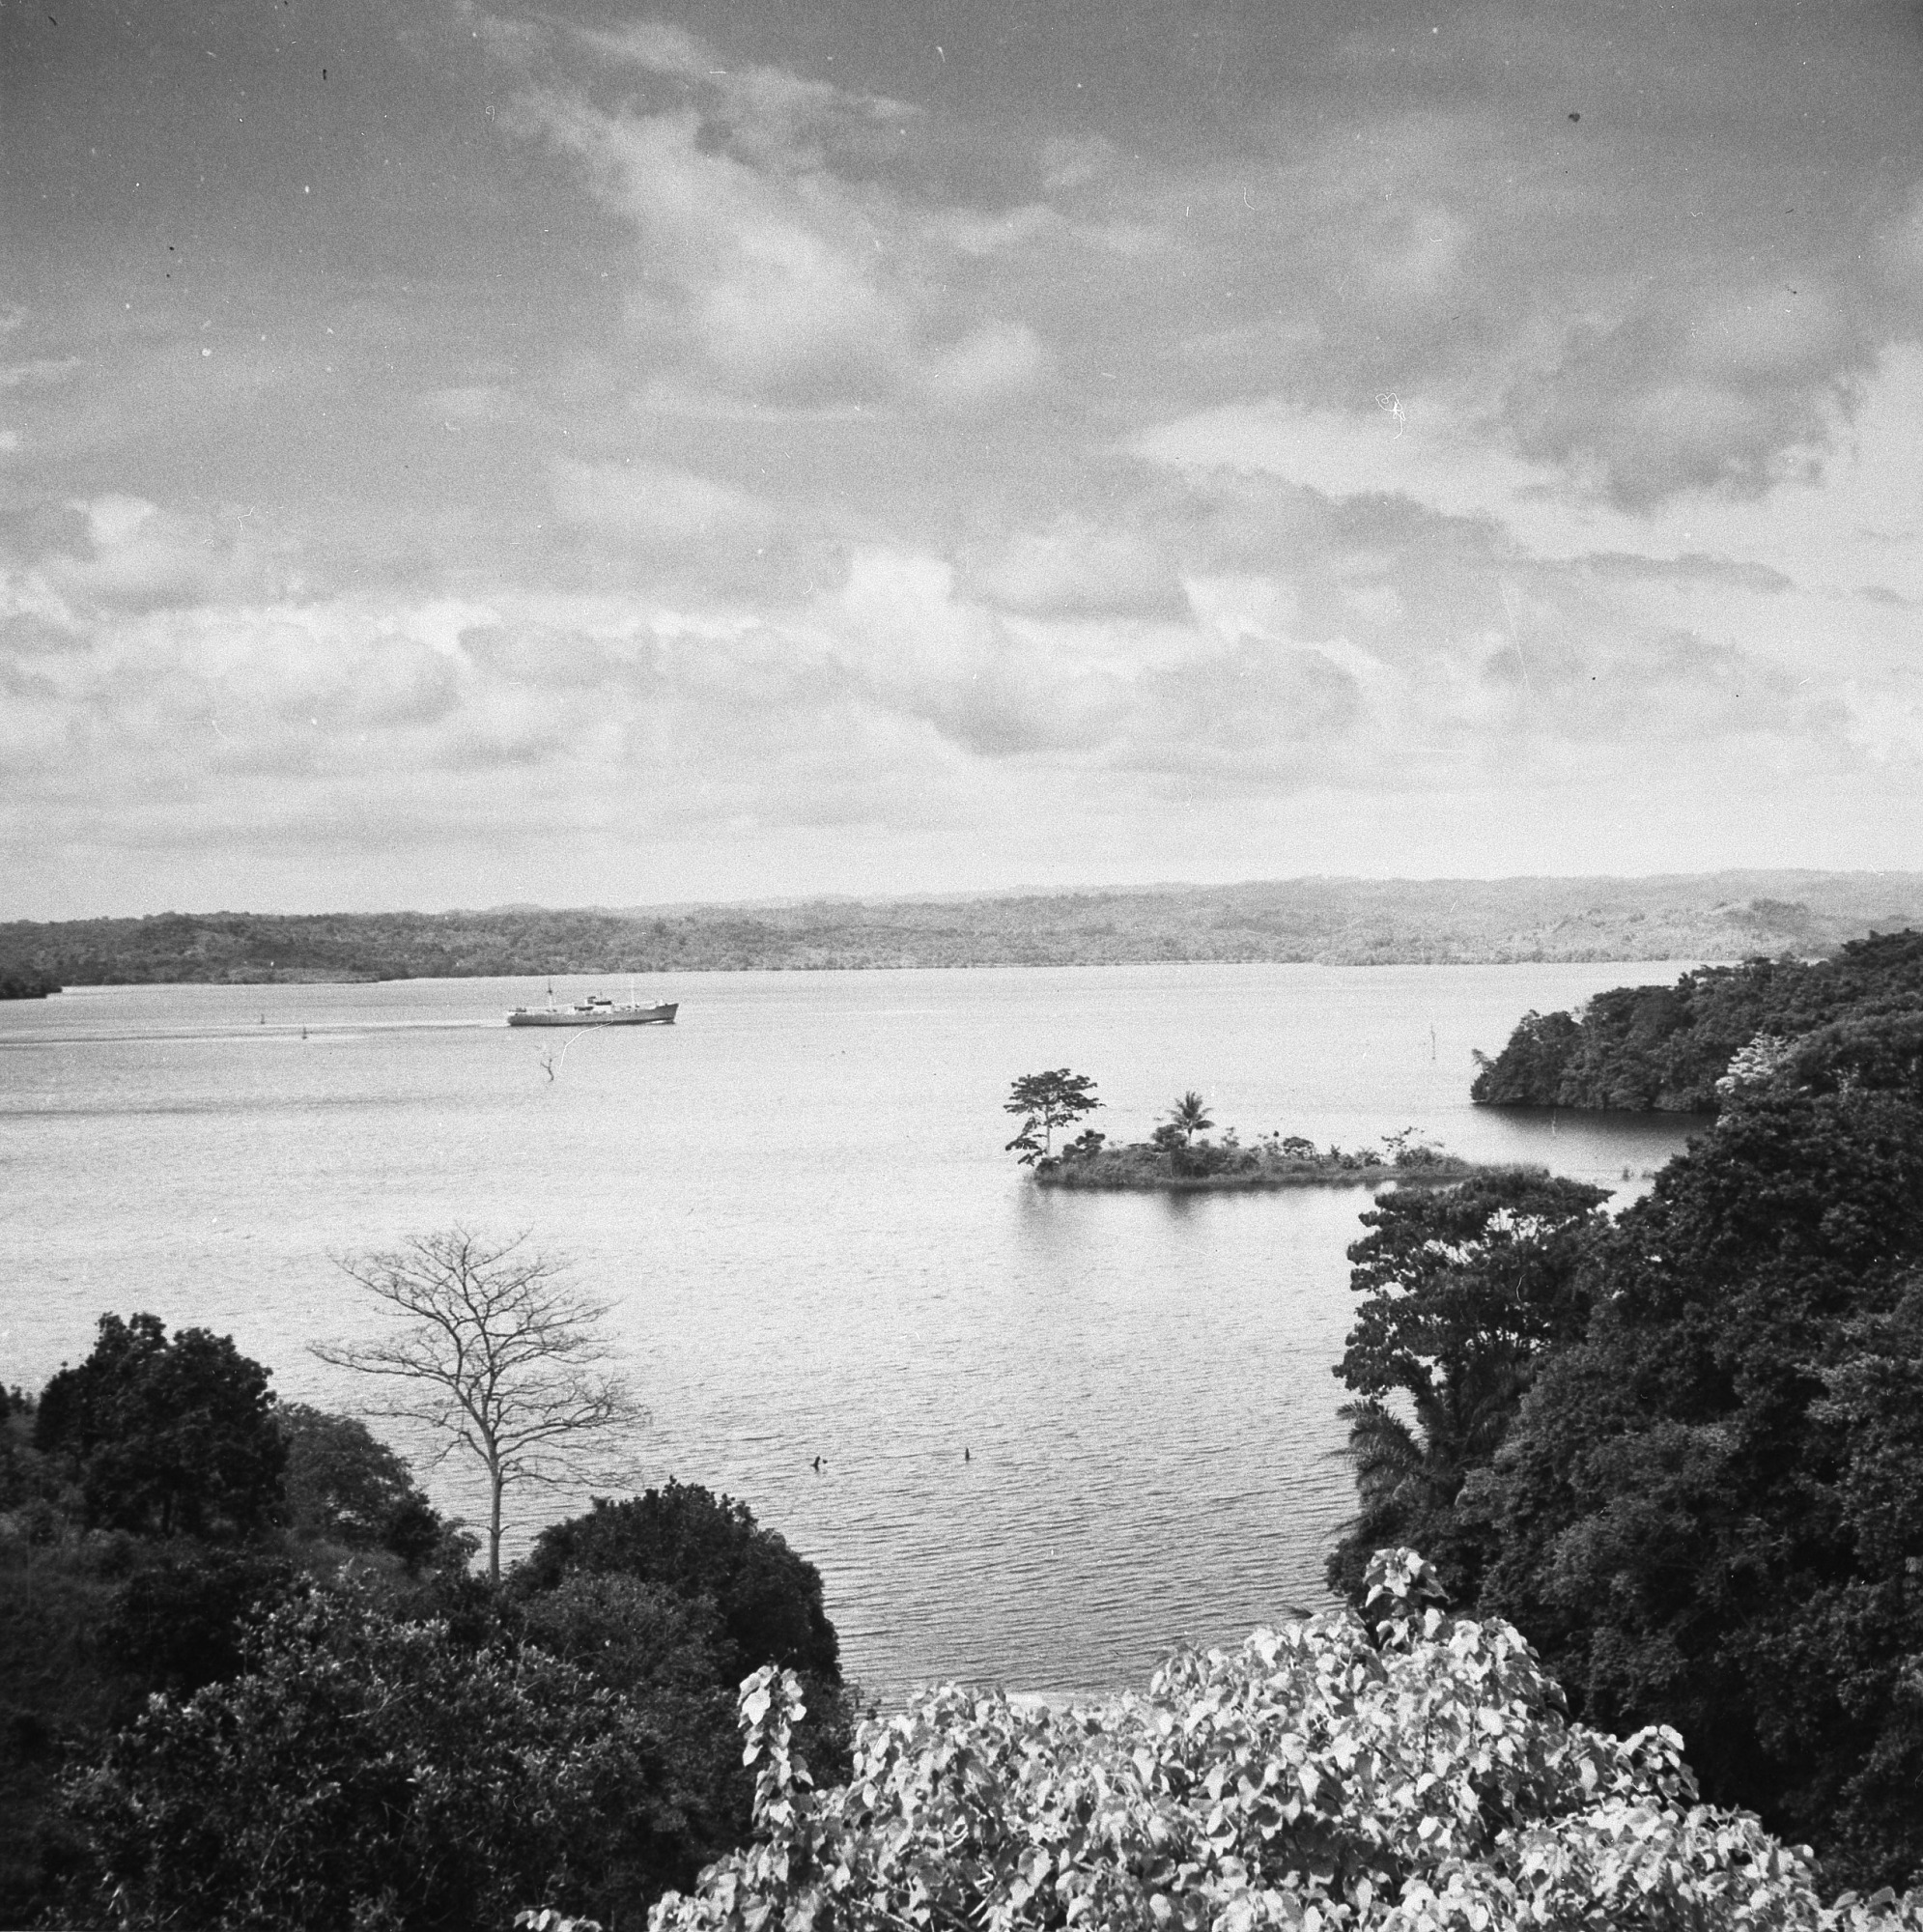 Panama Canal from Barro Colorado Island